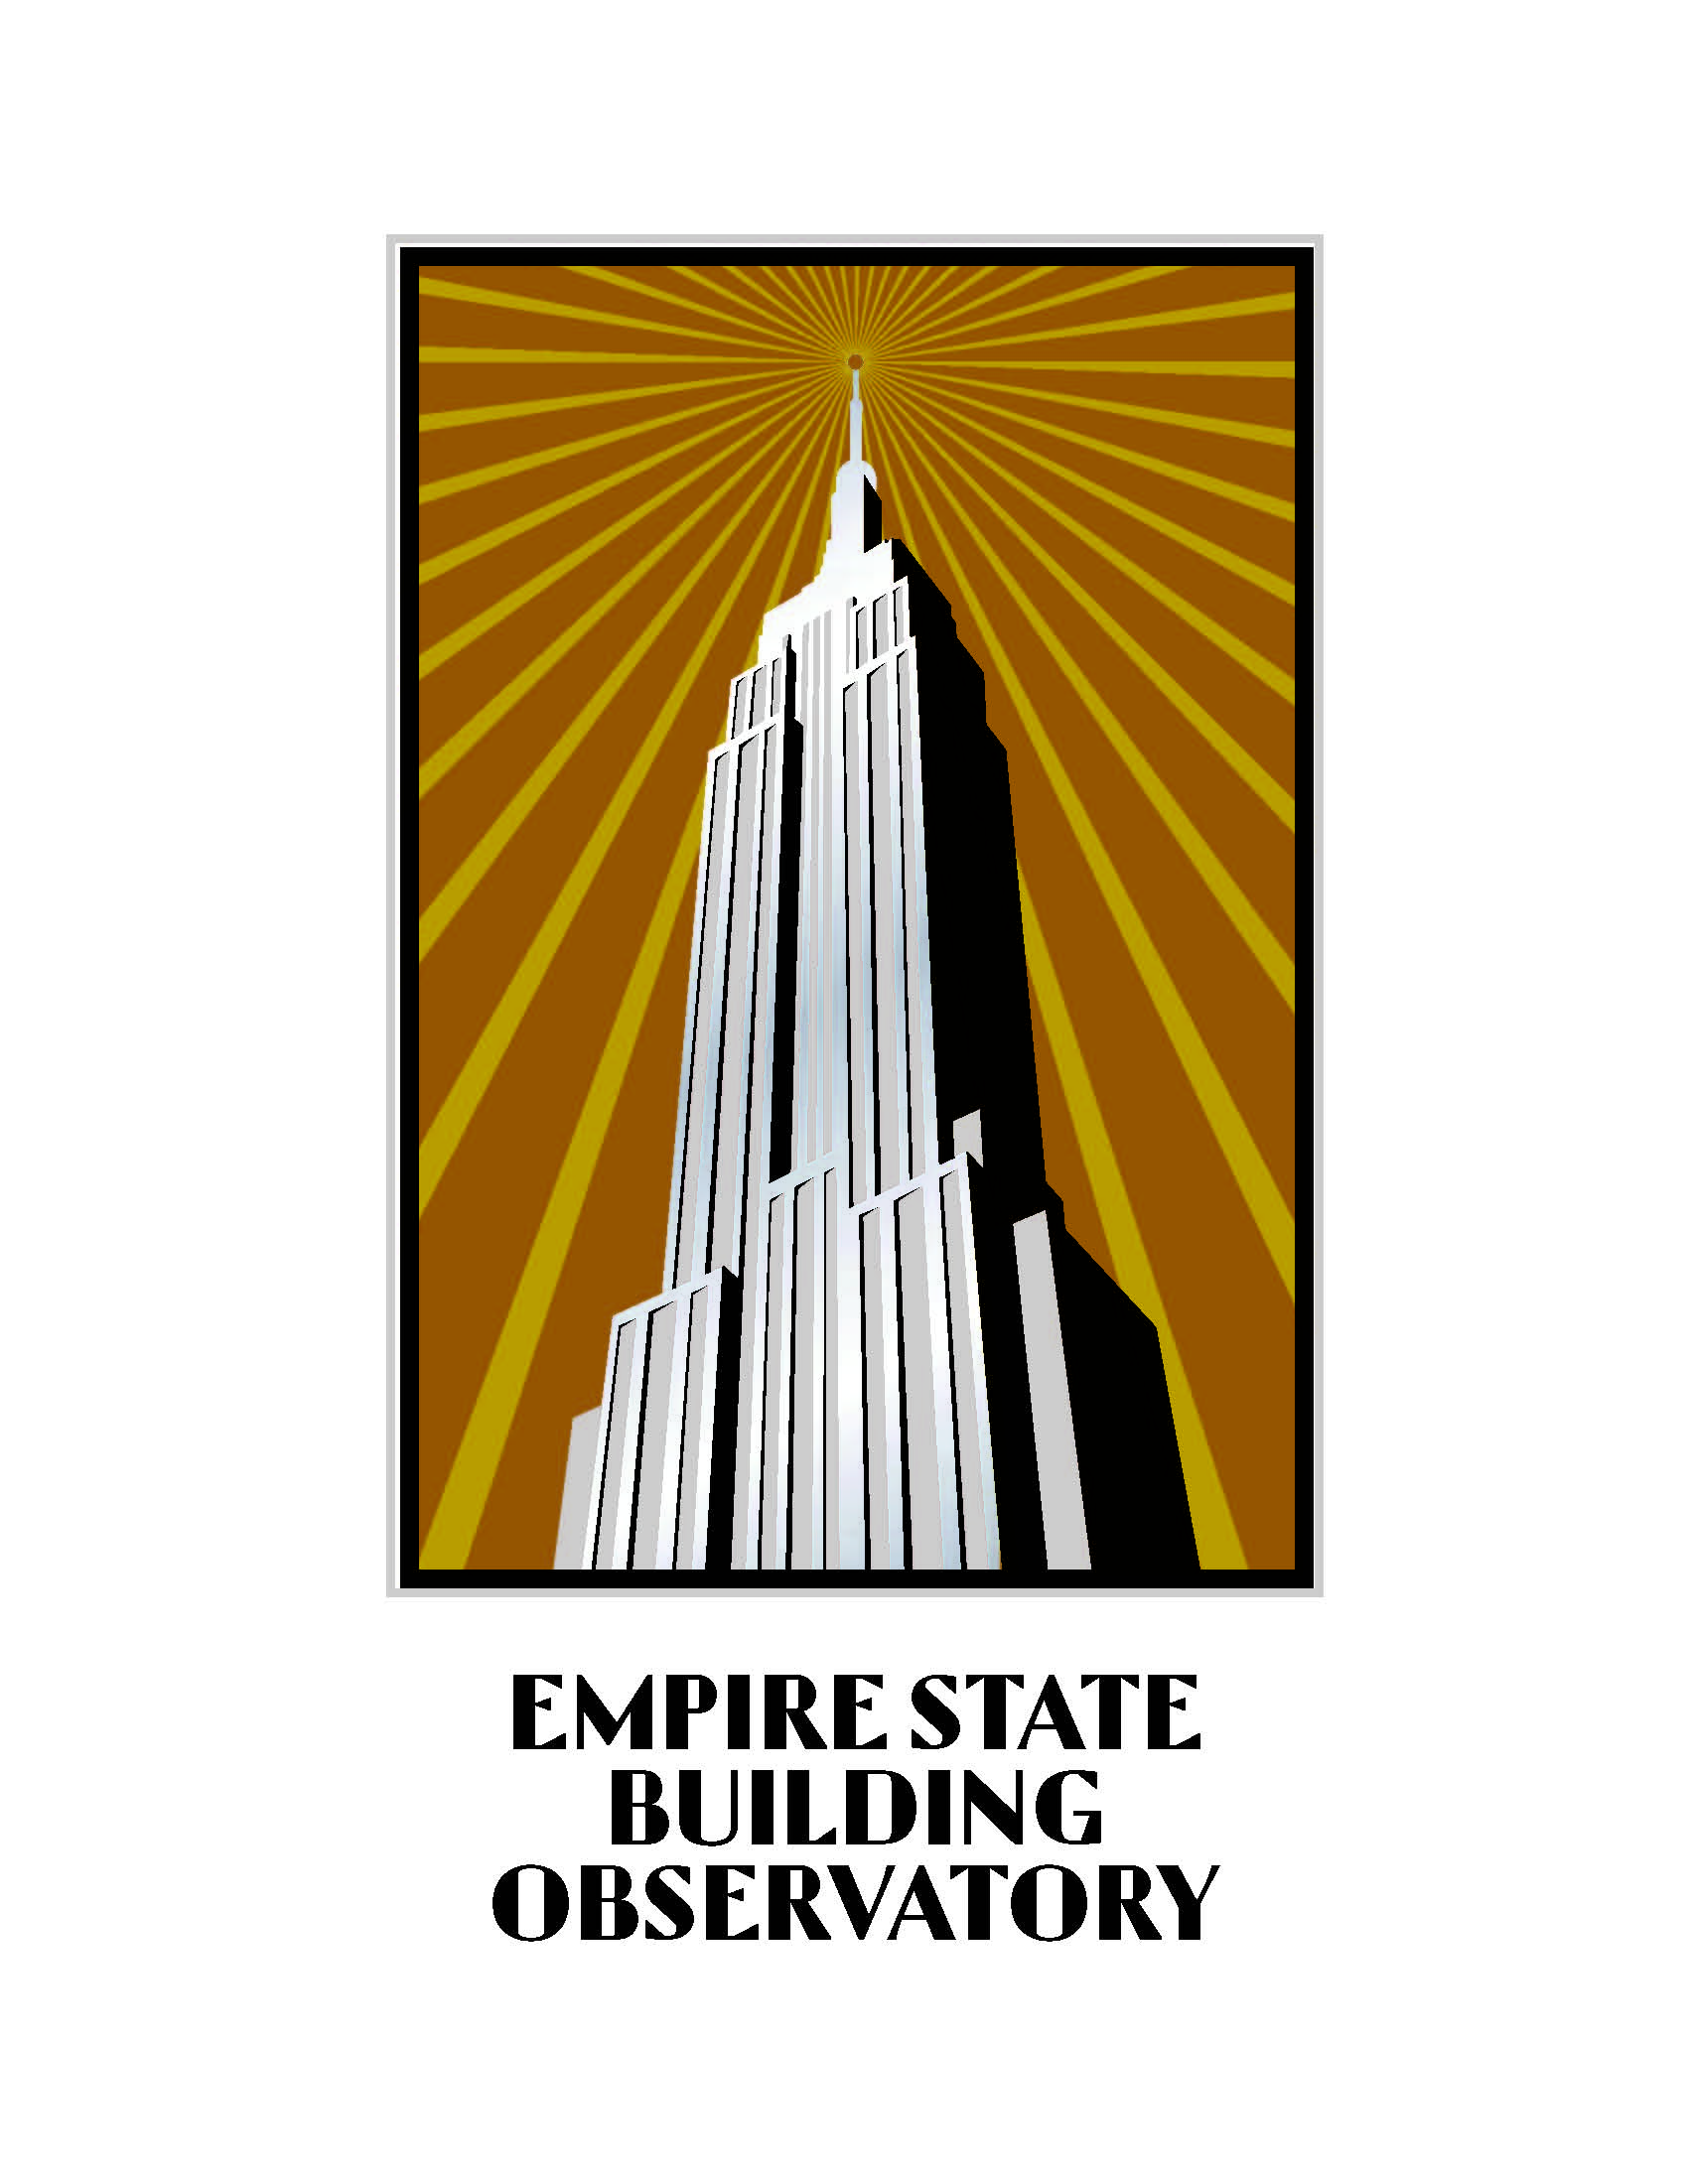 11 Empire State Icon Images